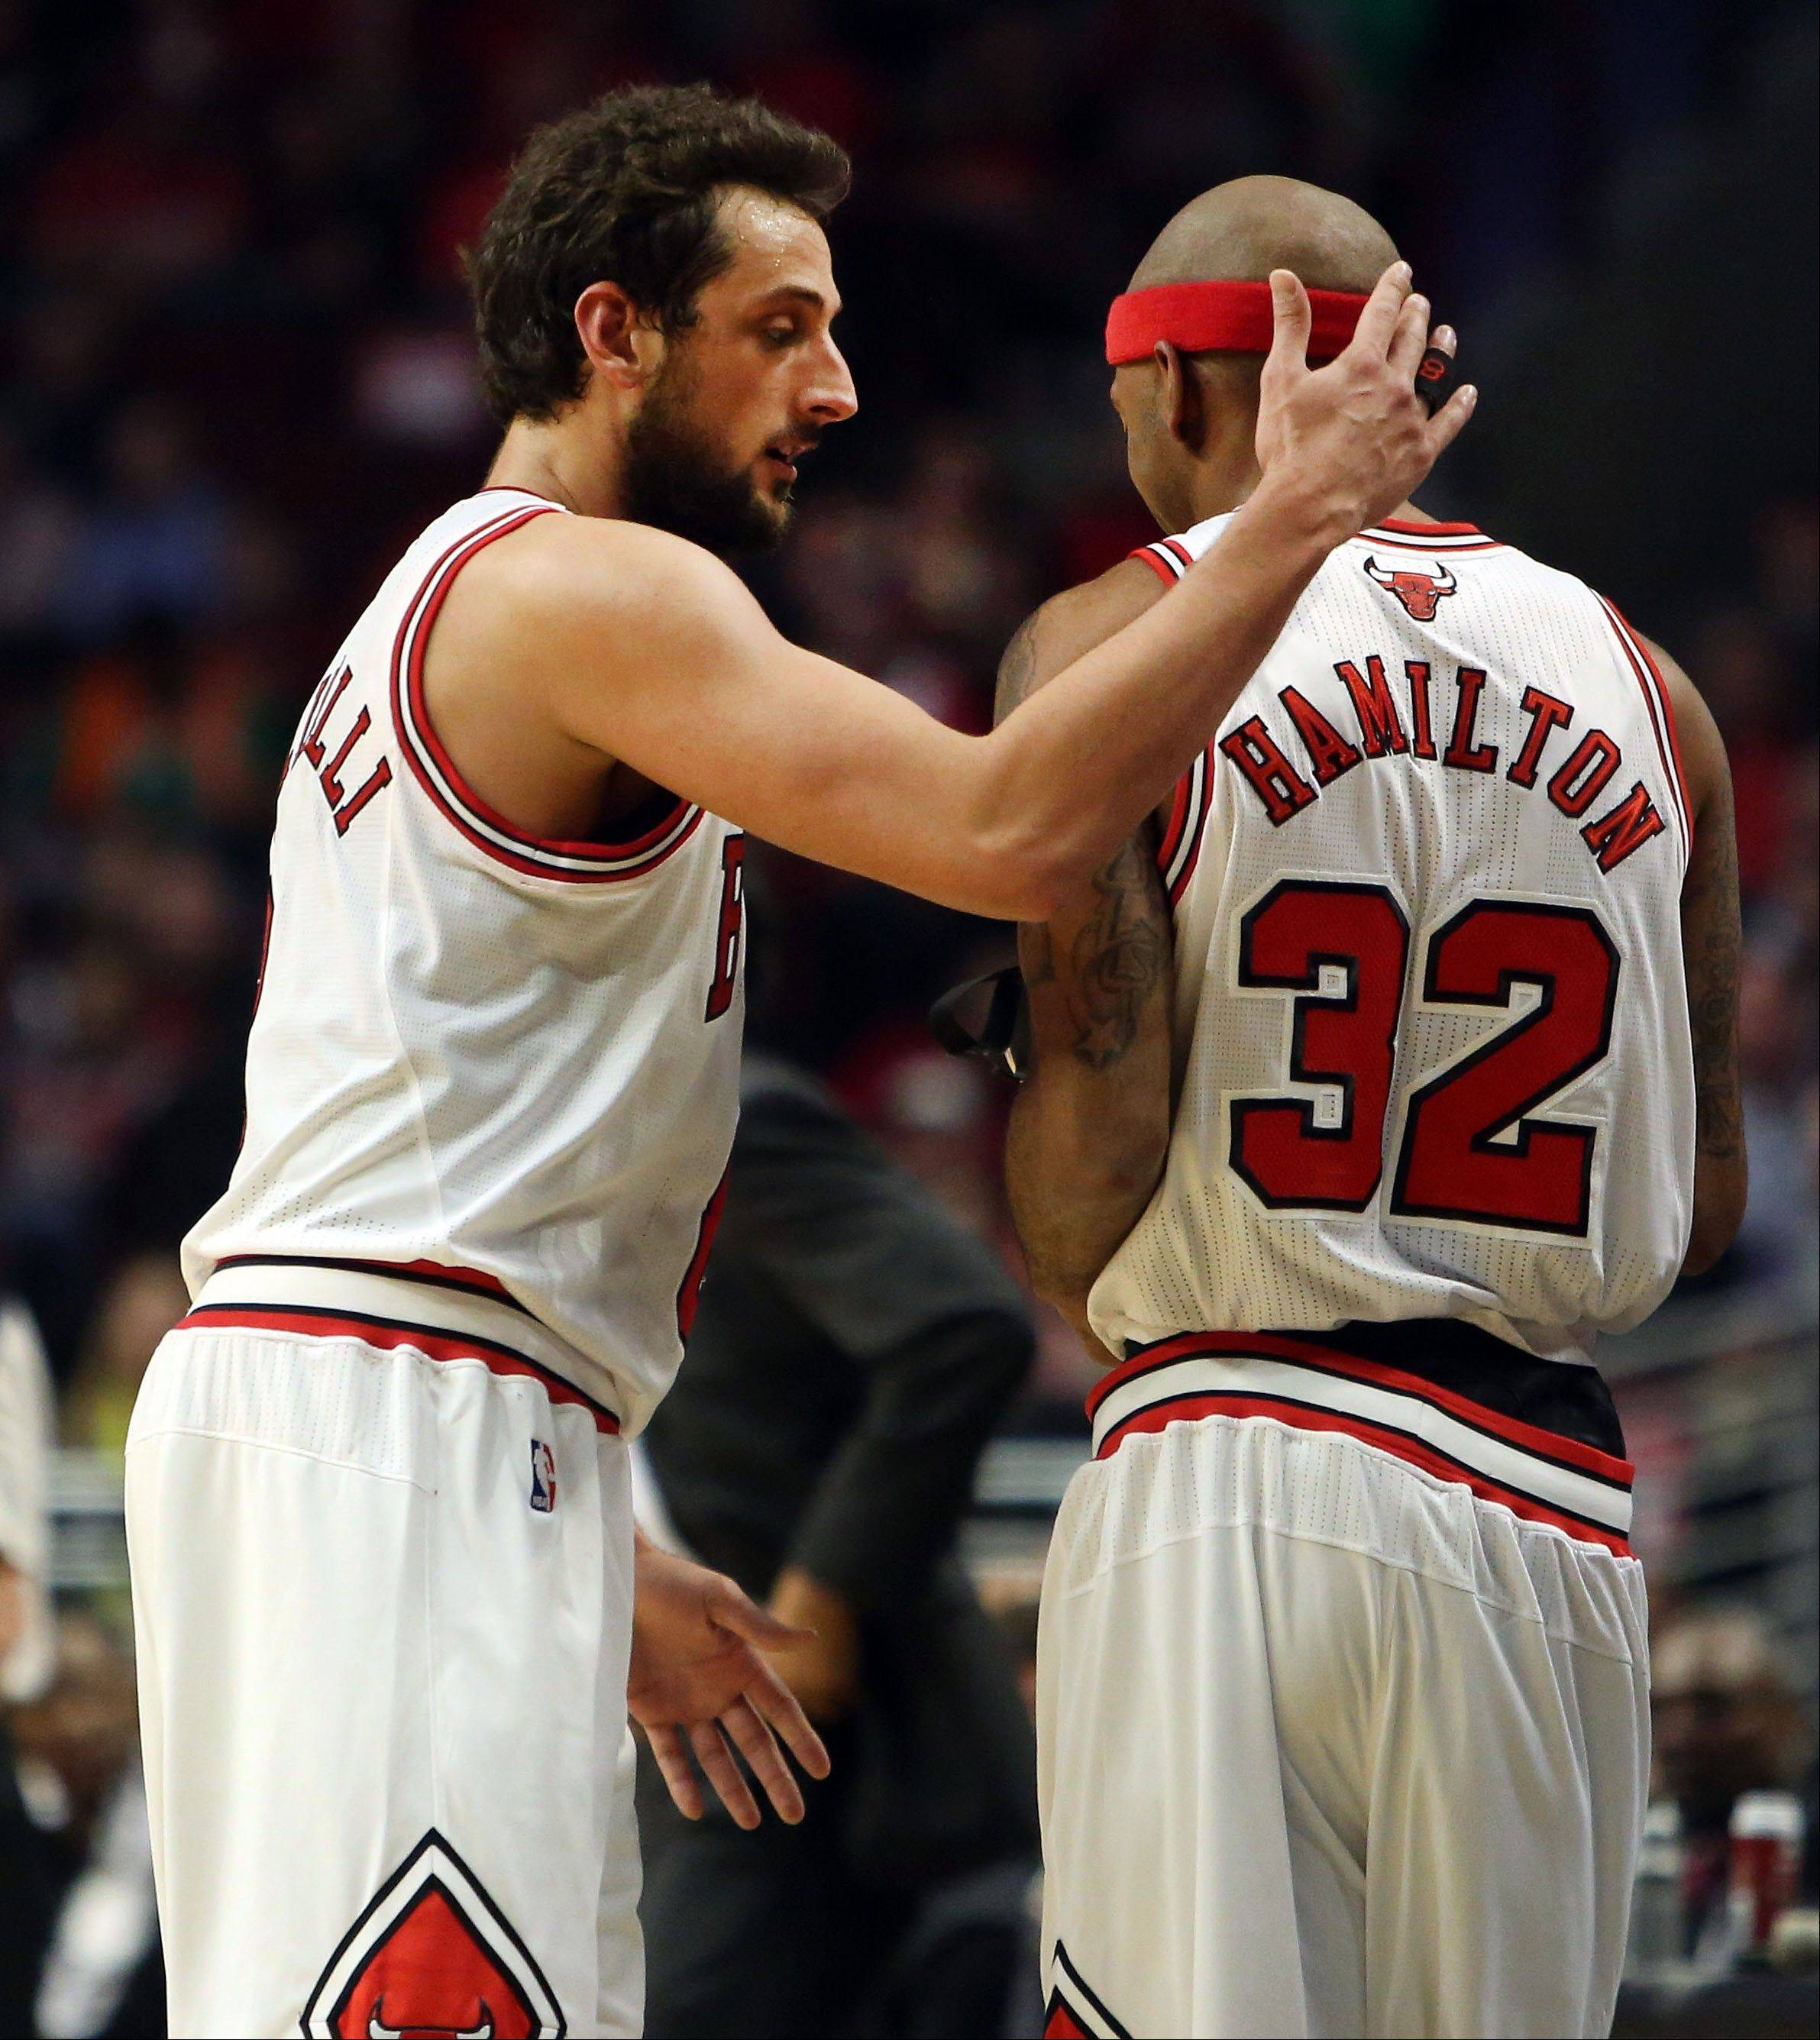 The Bulls' Marco Belinelli welcomes teammate Richard Hamilton into the game Monday night at the United Center. After missing a long stretch late in the season with a back injury, Hamilton made just two brief appearances in the first round against Brooklyn and hadn't played at all in the Miami series. He finished with 11 points in 22 minutes in Game 4.